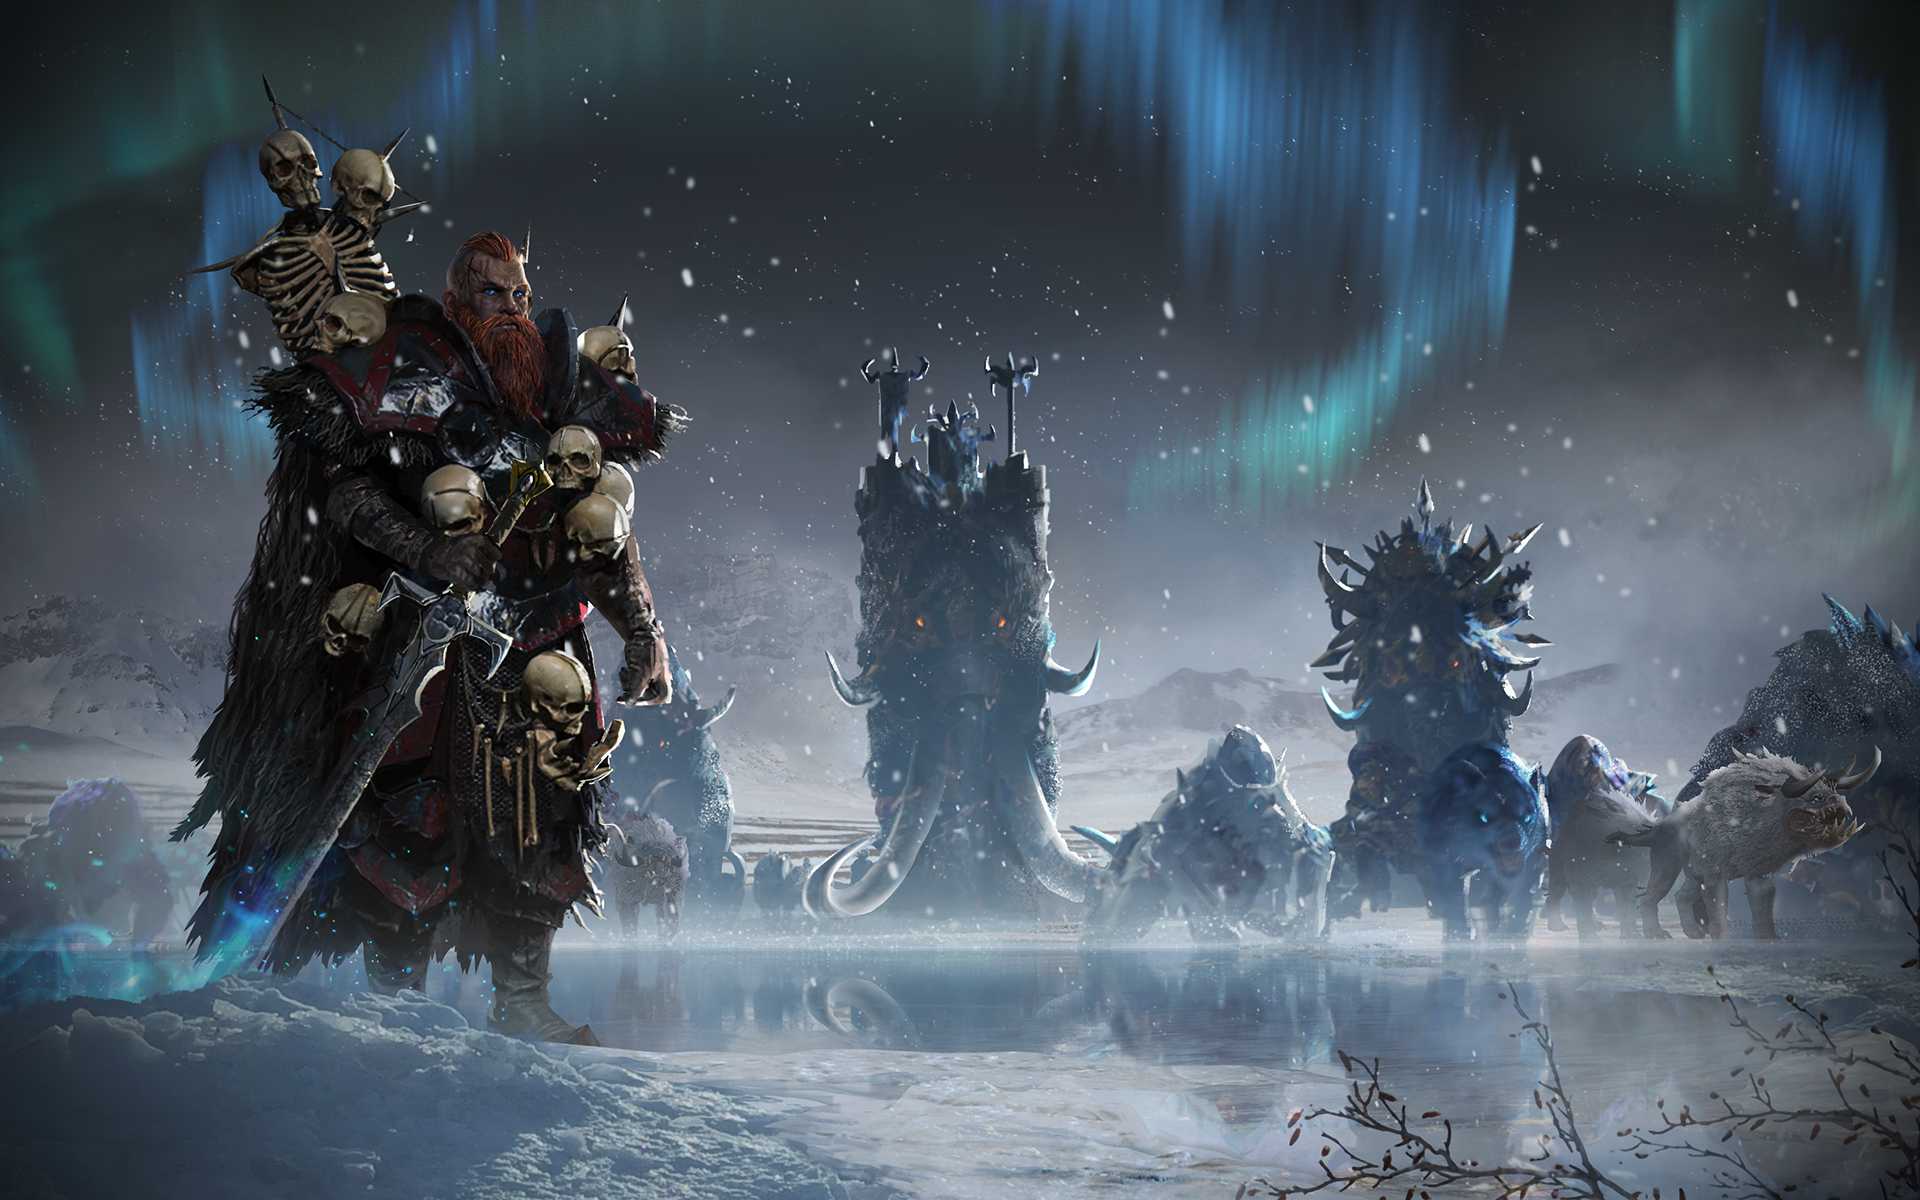 Total War Warhammer Norsca Wallpapers High Quality | Download Free